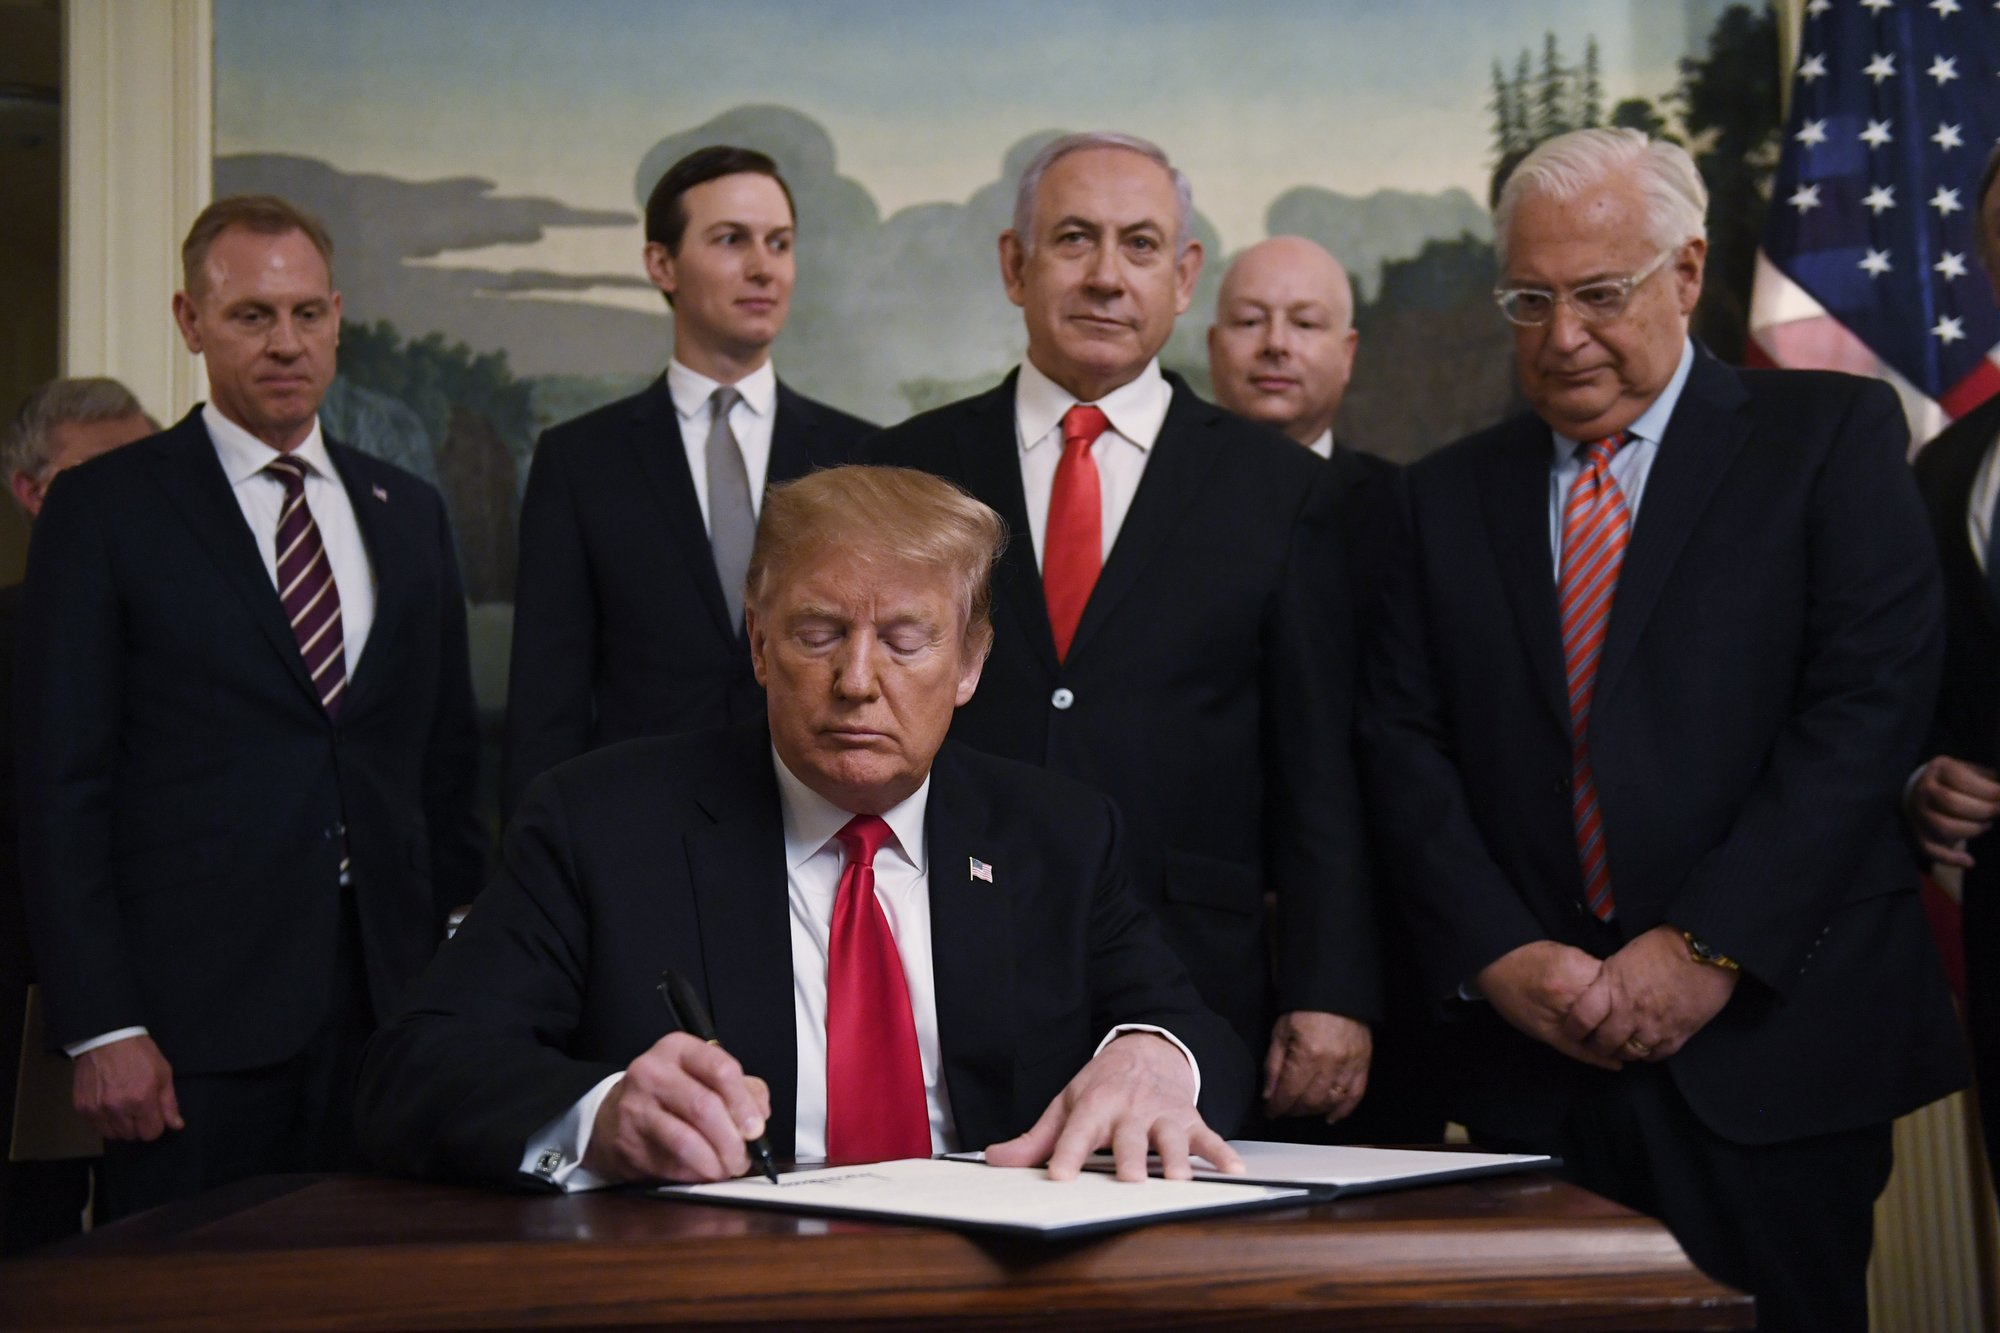 Arab League condemns Trump's recognition of Israeli sovereignty over Golan